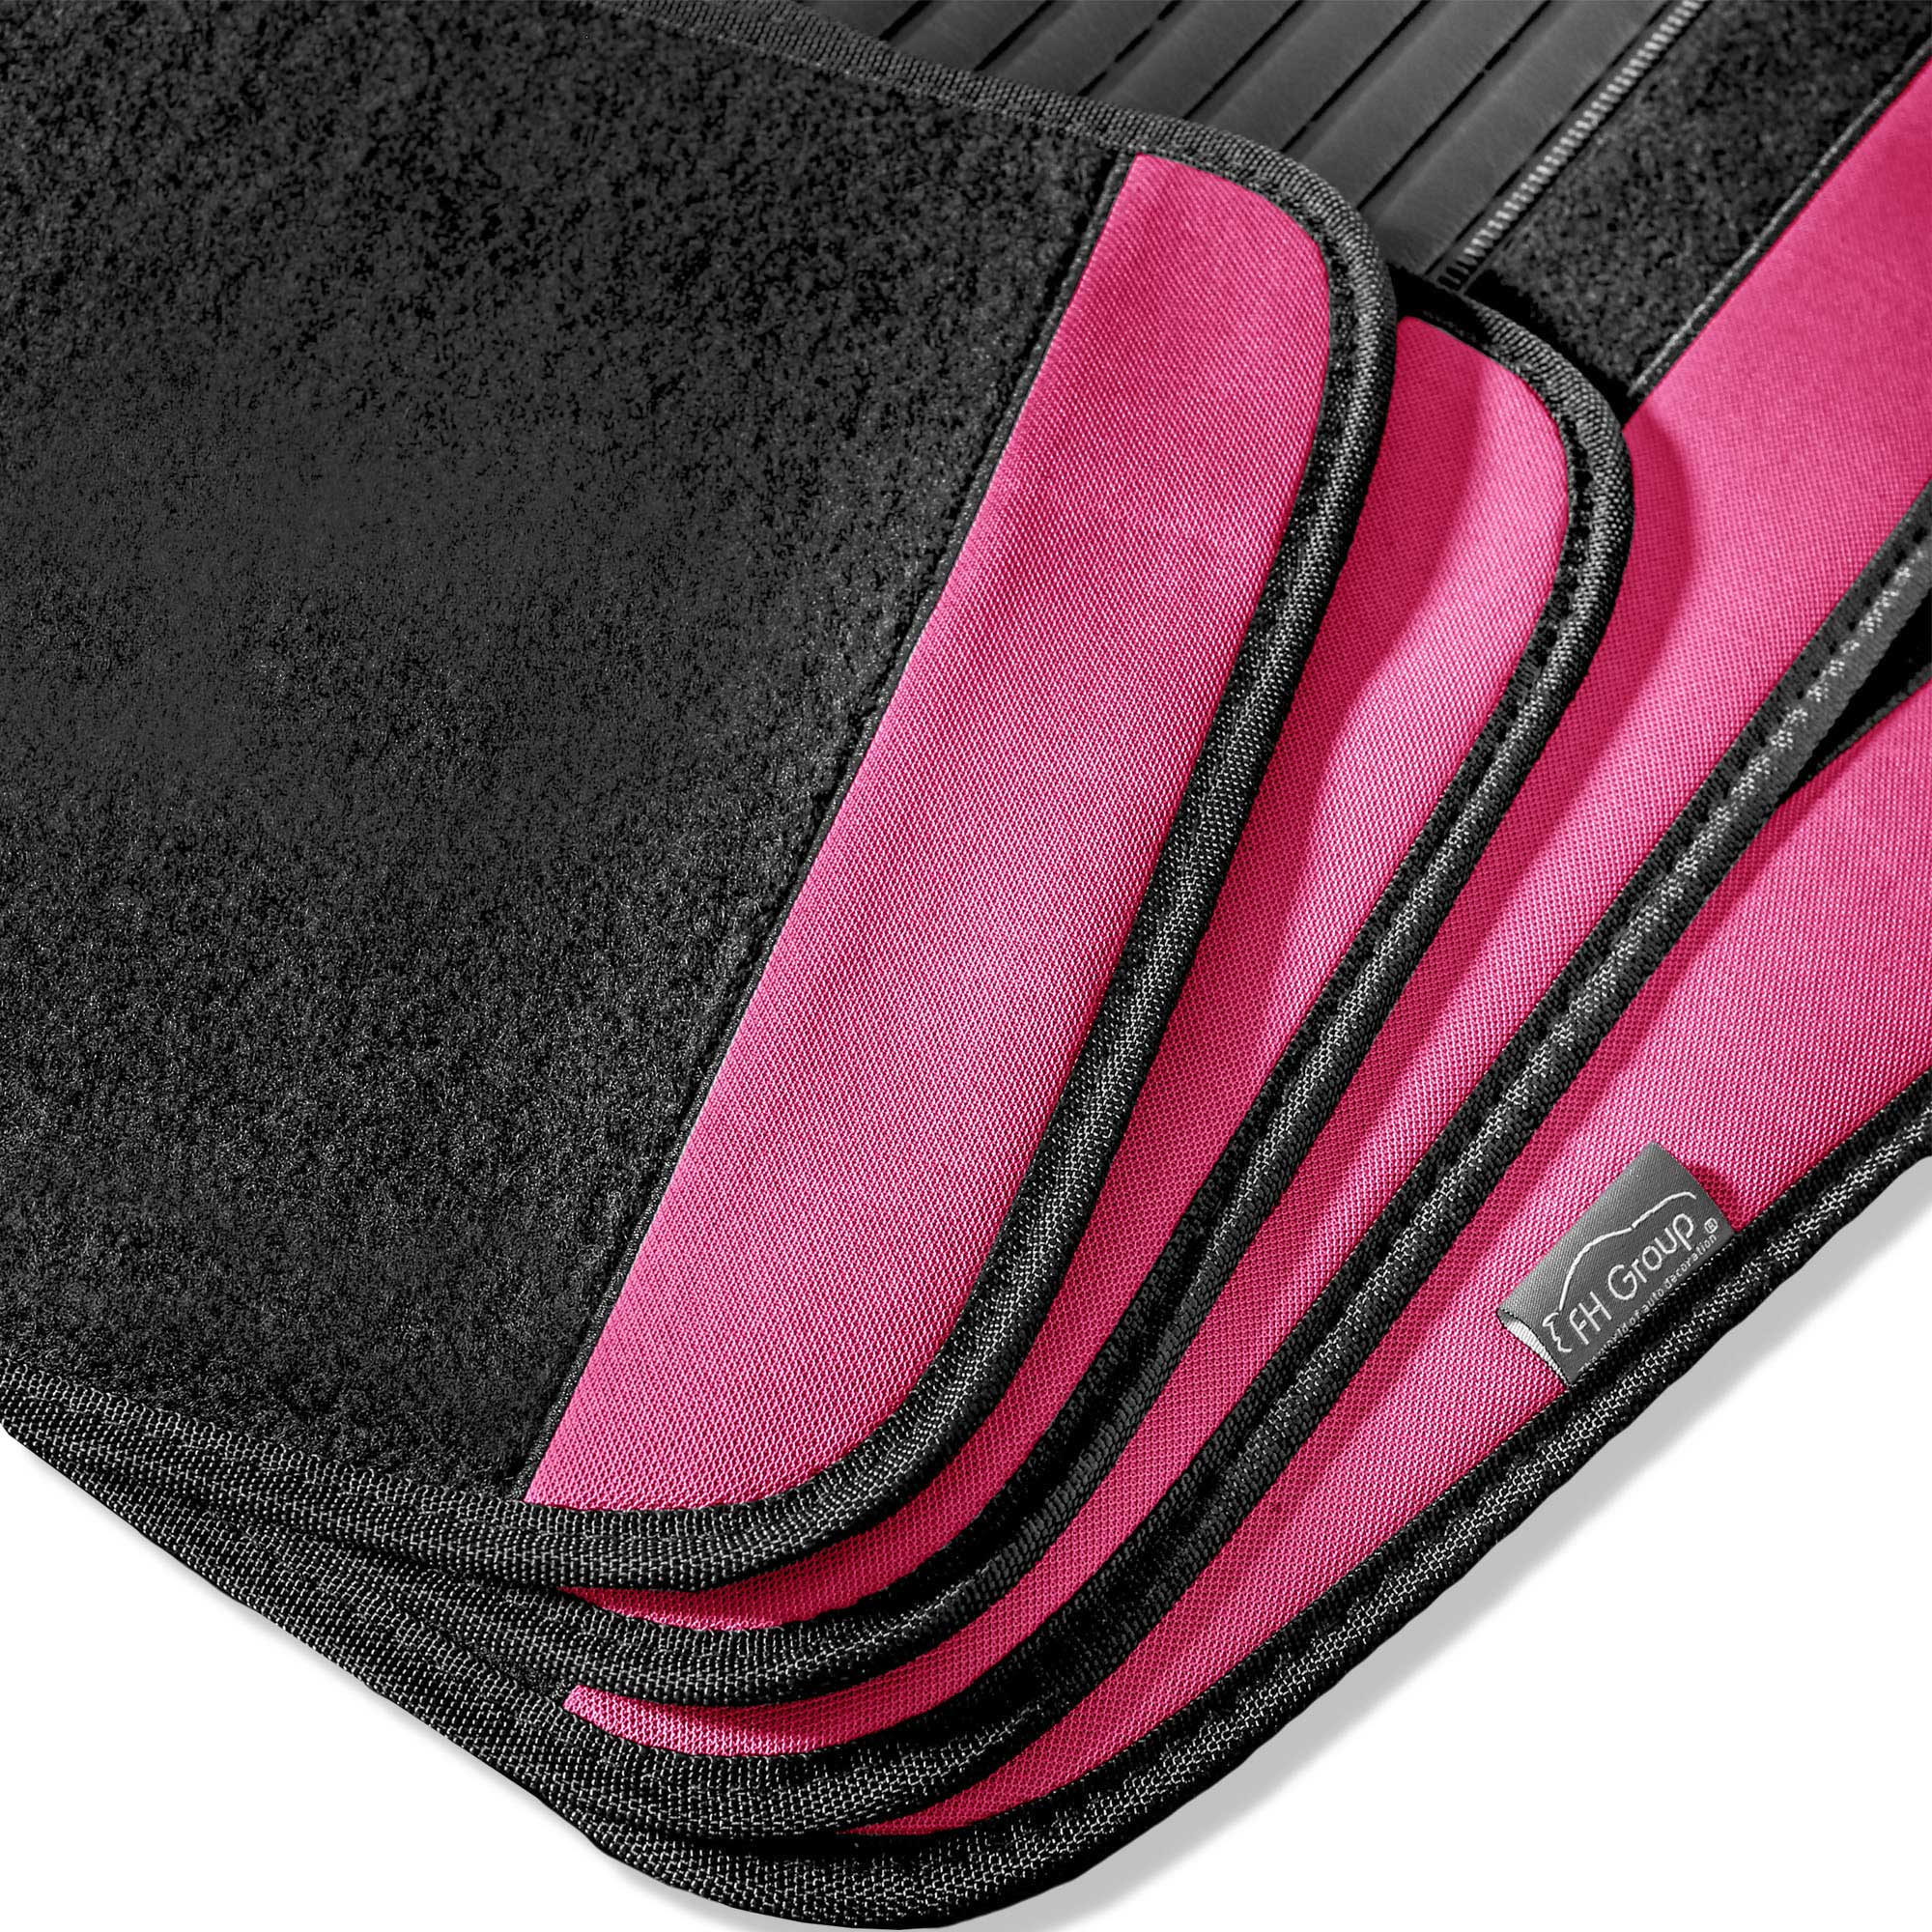 4pcs-Universal-Carpet-Floor-Mats-for-Car-SUV-Van-10-Color-Options-Full-Set thumbnail 45